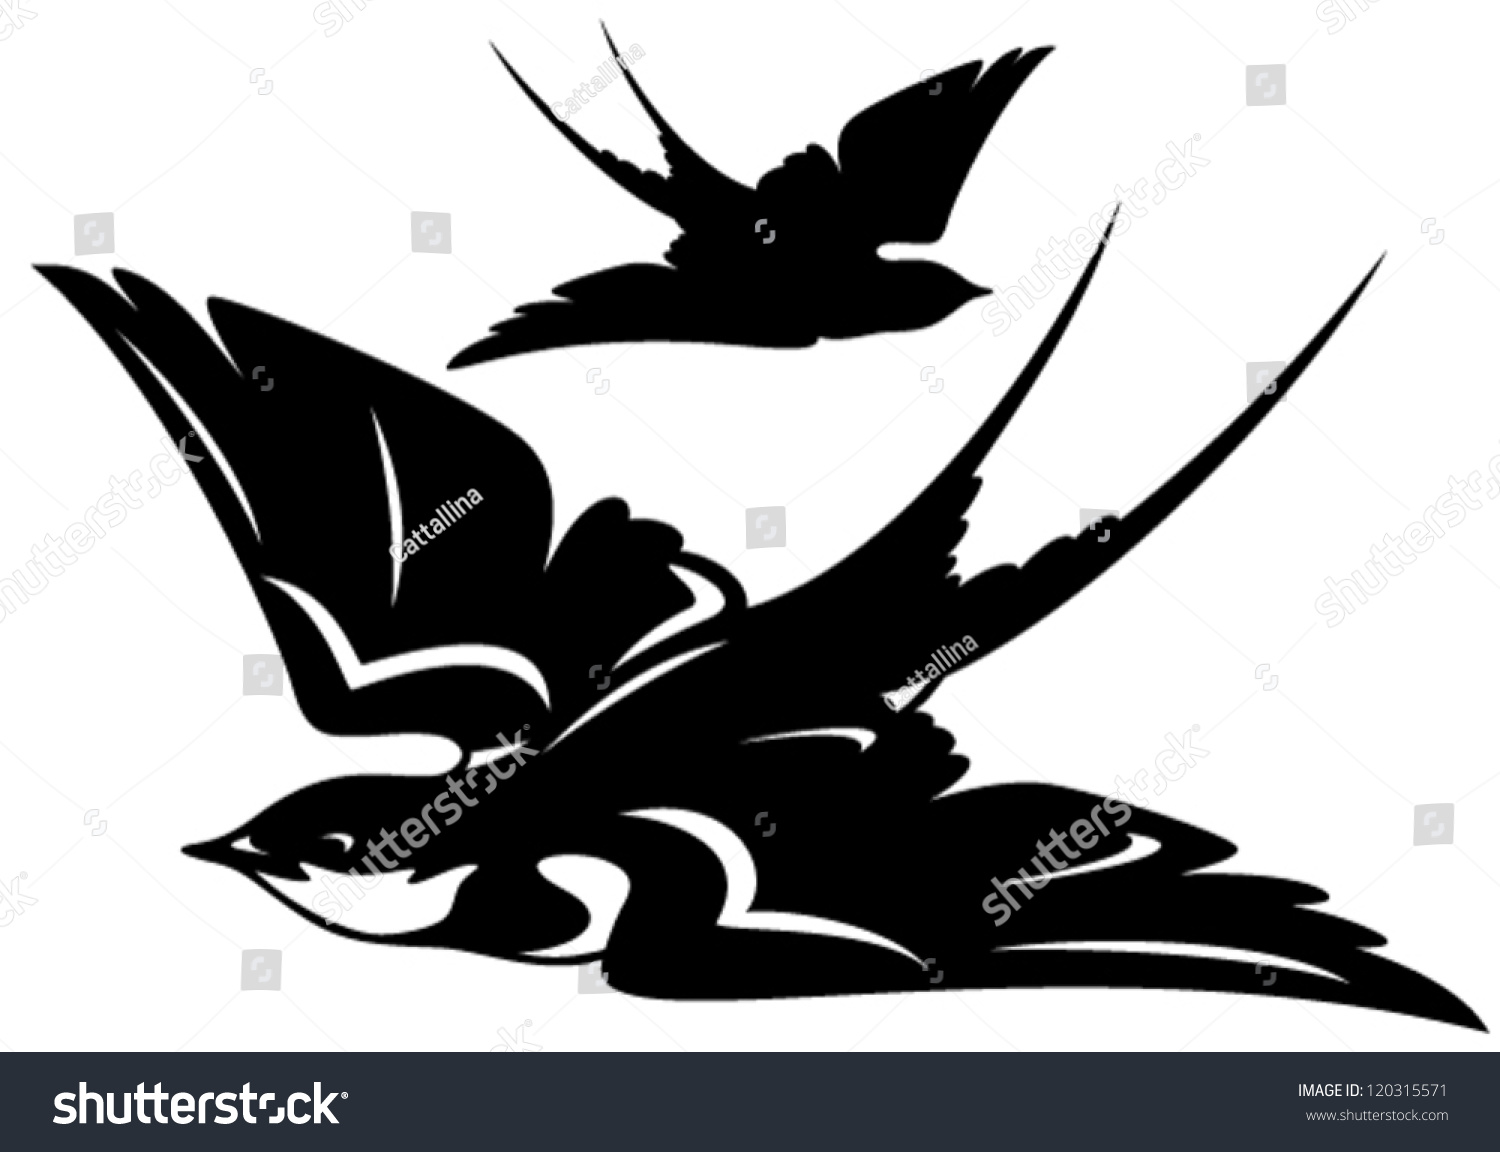 Set of sketches of flying swallows stock vector illustration - Flying Swallow Bird Vector Illustration Black And White Outline And Silhouette